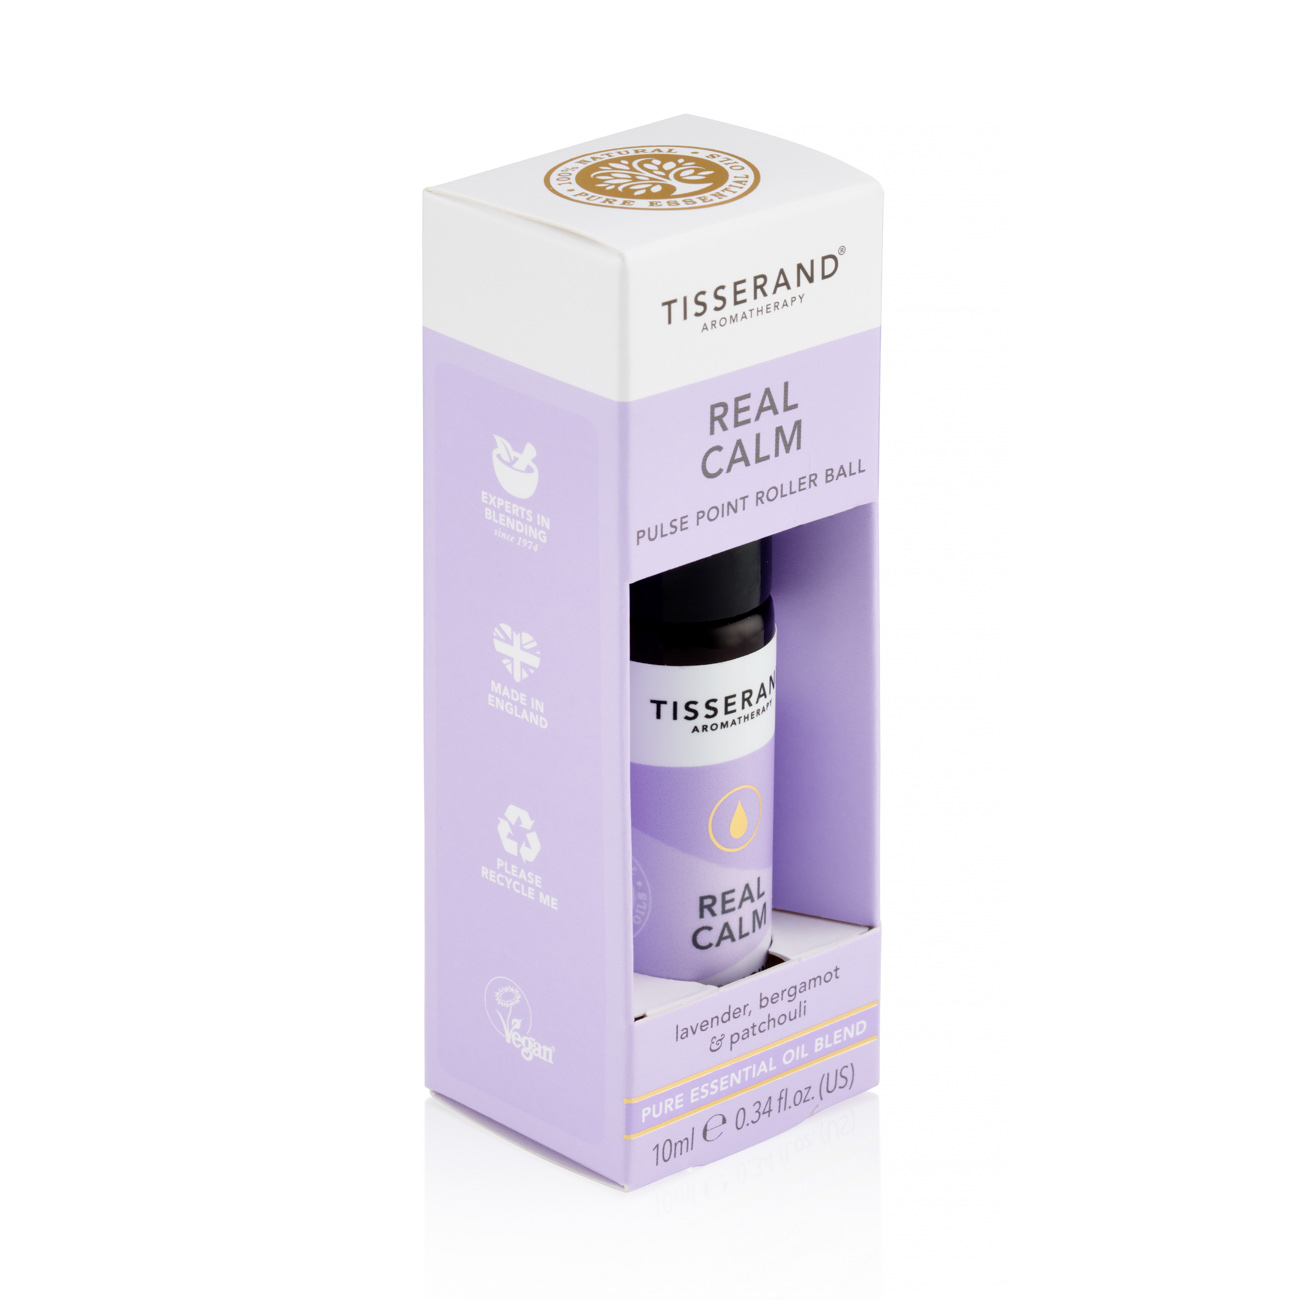 Real Calm Pulse Point Roller Ball 10ml